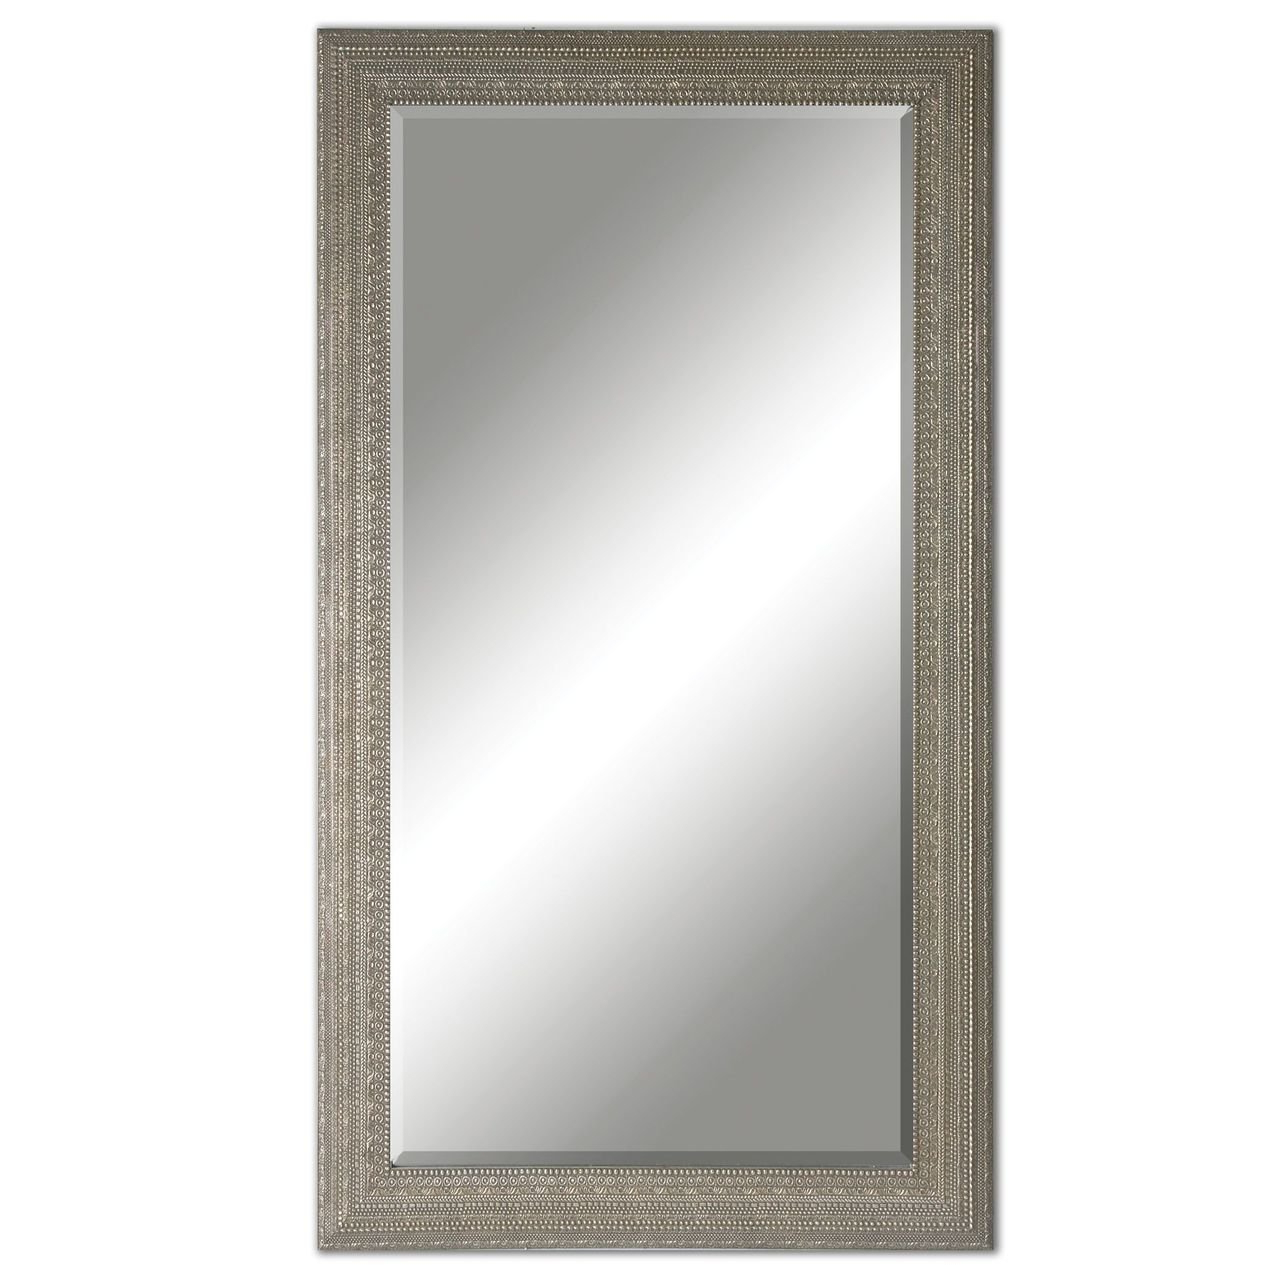 Silver Beaded Wall Mirrors Pertaining To Well Known Intelligent Design Full Length Silver Beaded Frame Mirror (Gallery 19 of 20)